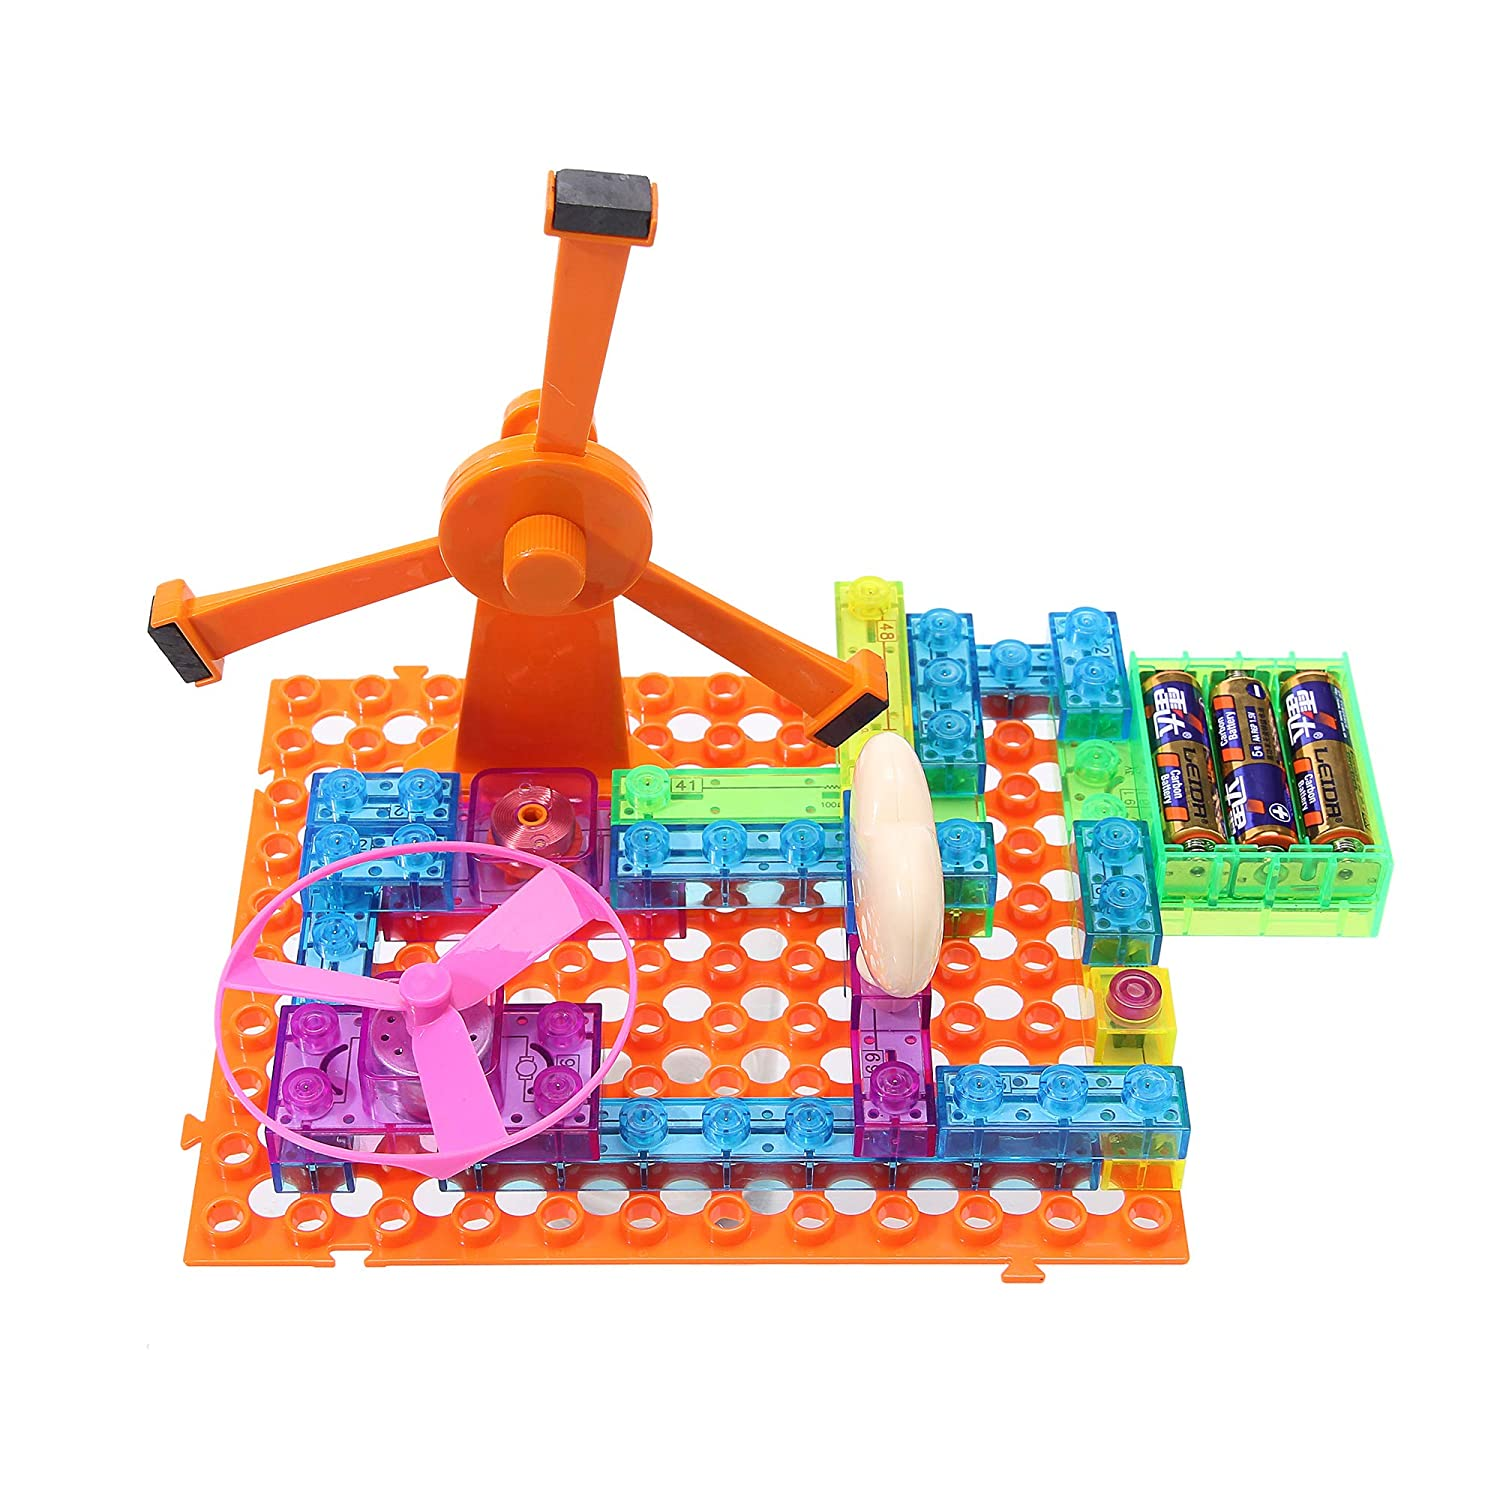 Pantheon Circuits For Kids Stem Science Electronic Snap Snaptricity Kit Build 75 Projects Circuit Toy 600 Age 8 9 10 11 12 To 15 Year Old 64 Pieces Office